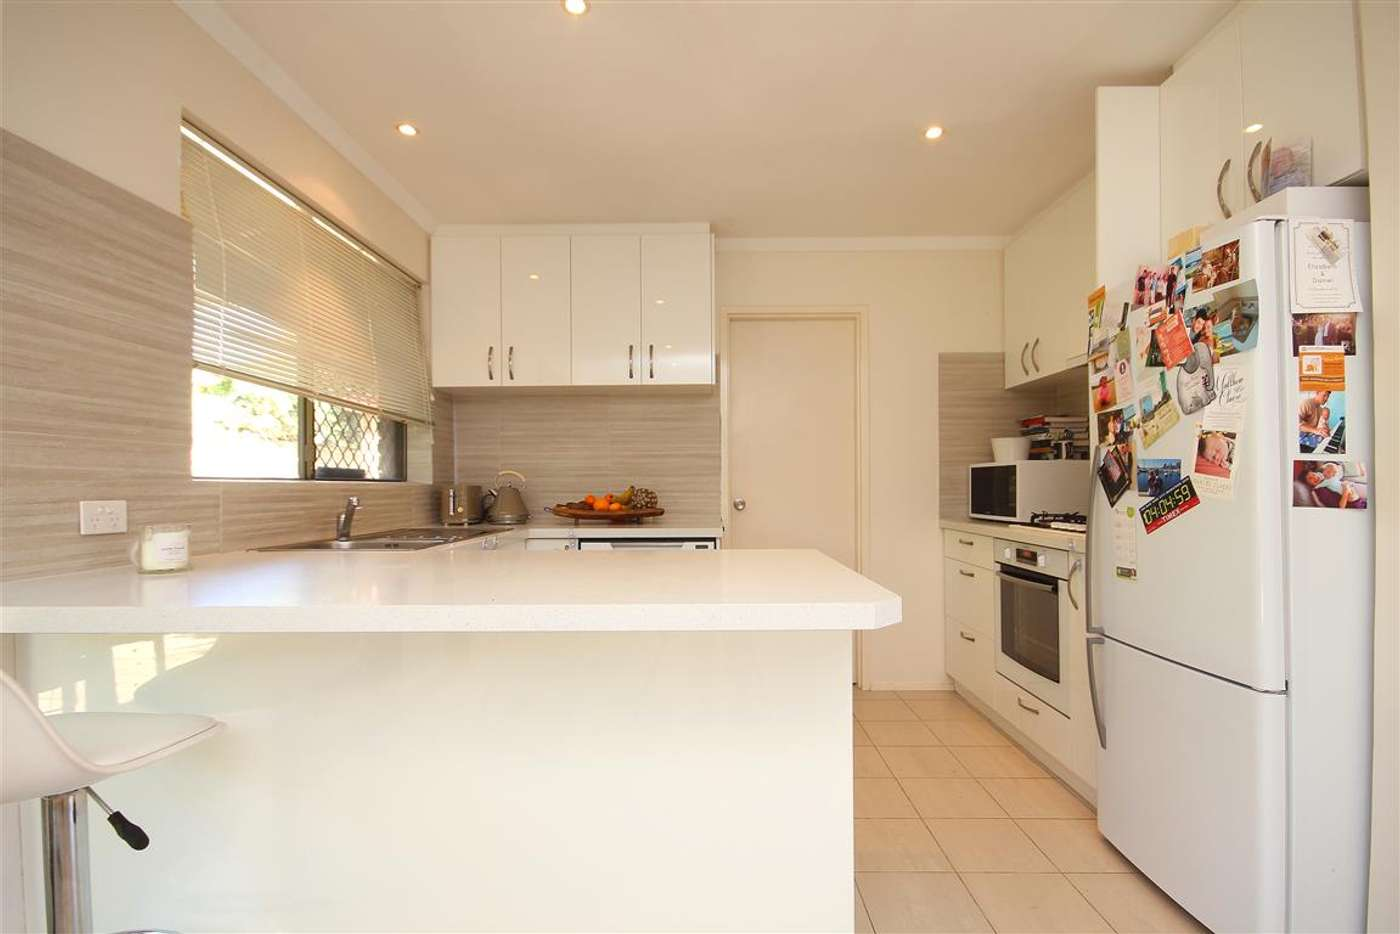 Sixth view of Homely villa listing, 1/19 ANSTEY STREET, South Perth WA 6151